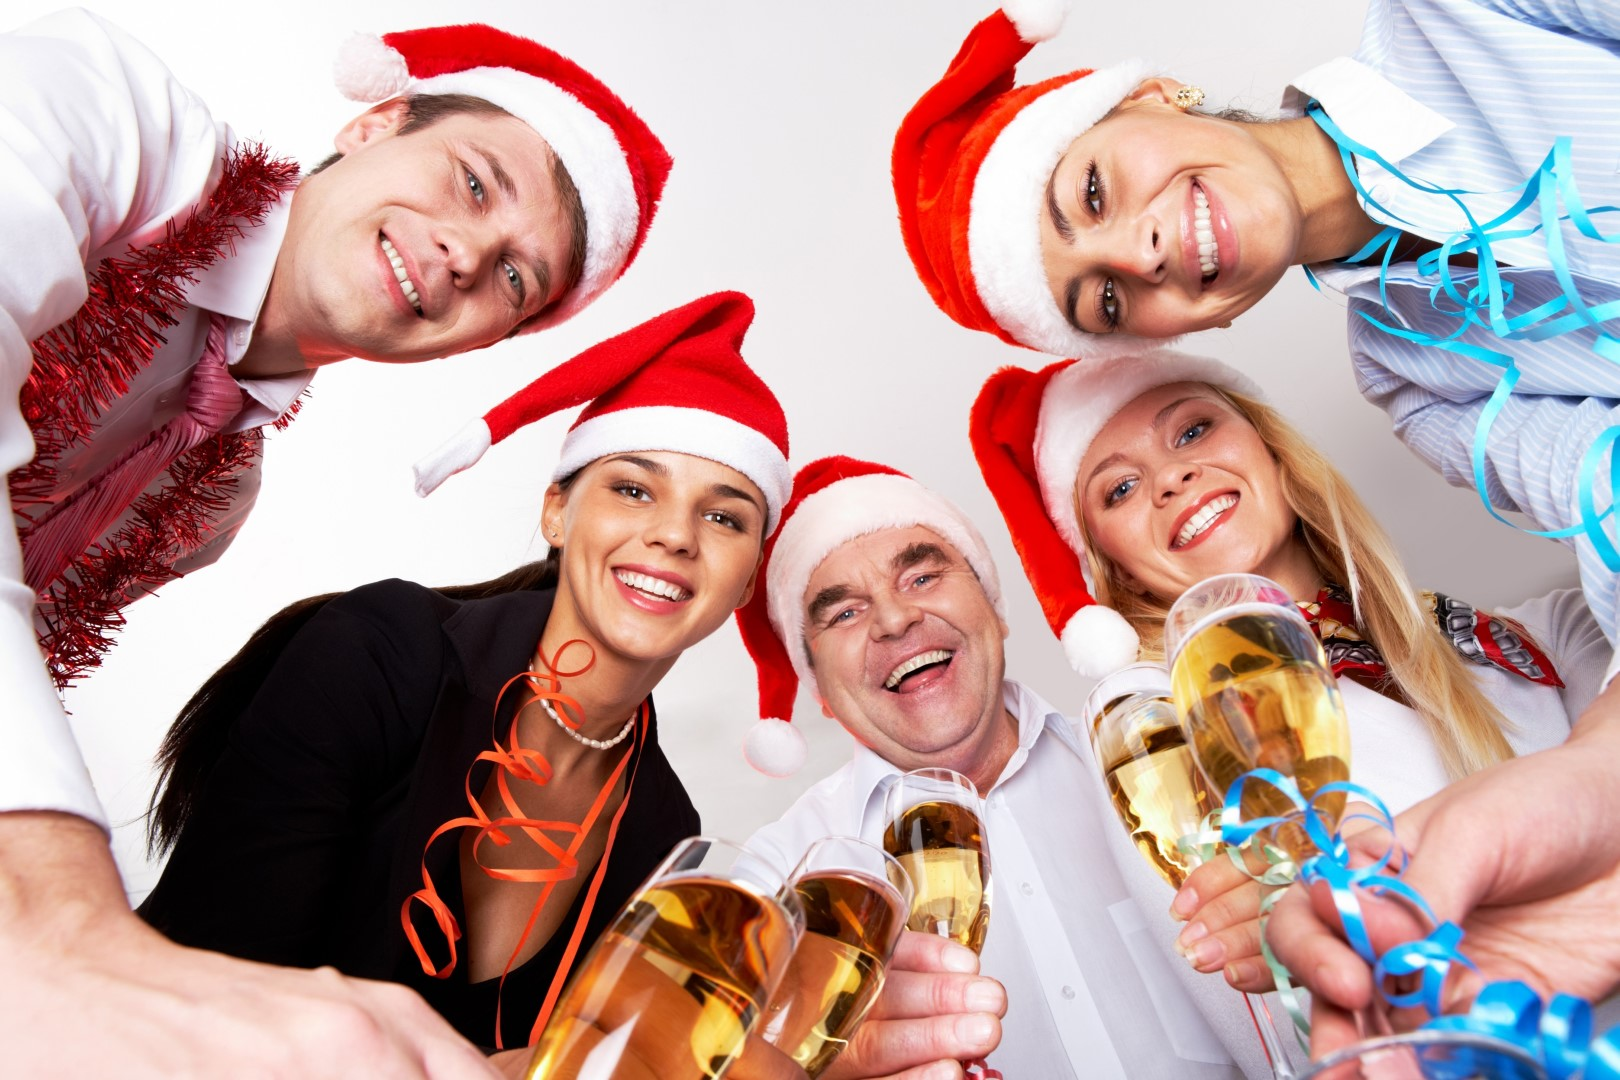 christmas-party-image-large